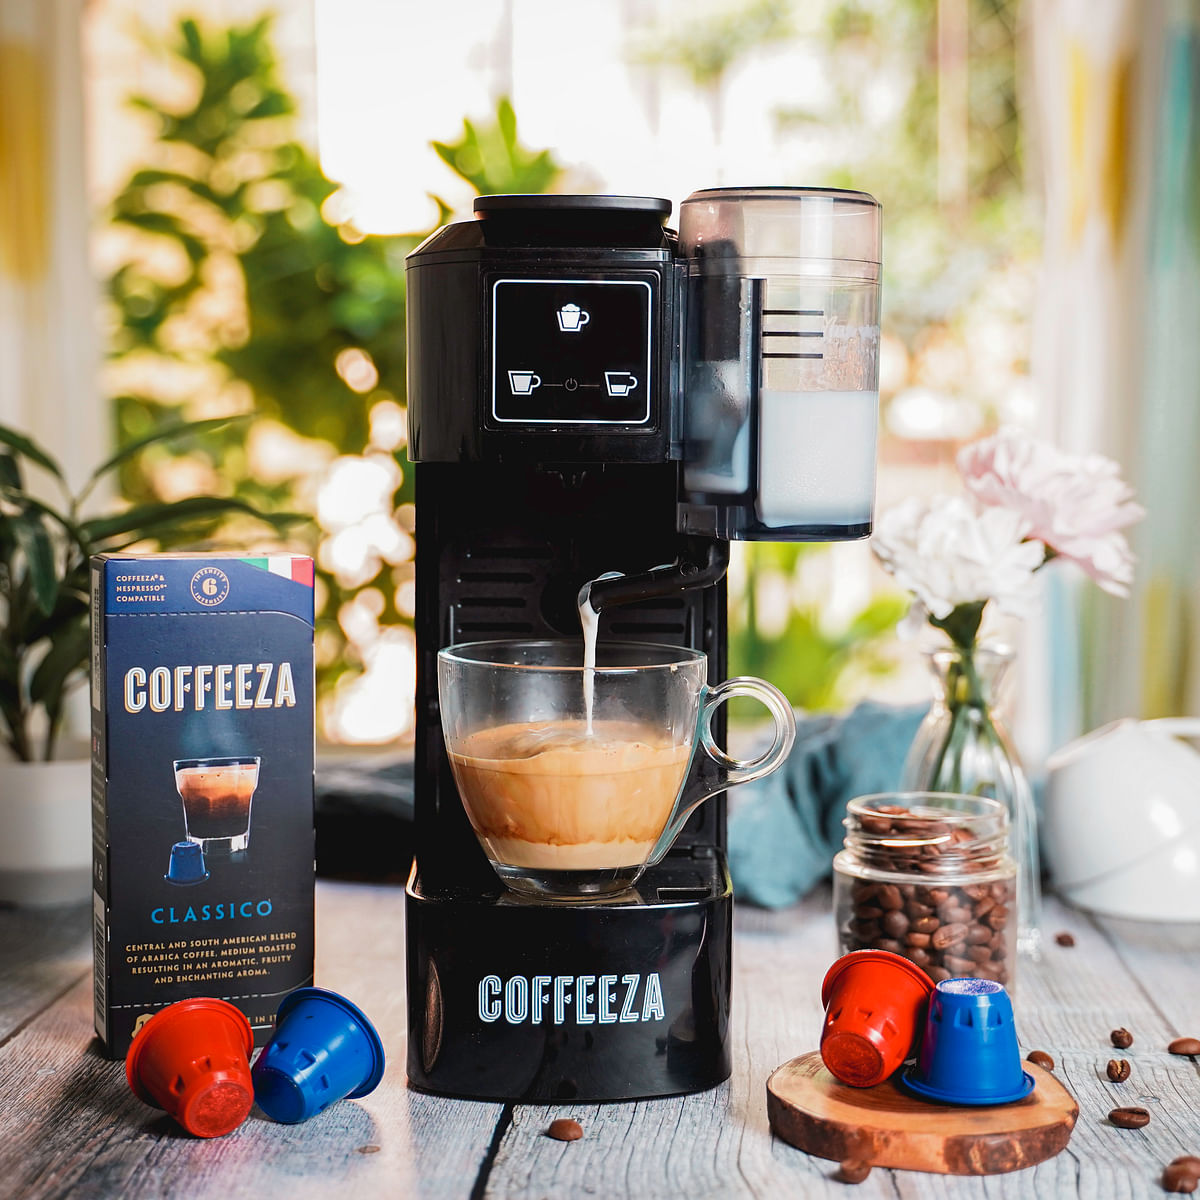 Coffeeza launches one-touch cappuccino machine in India